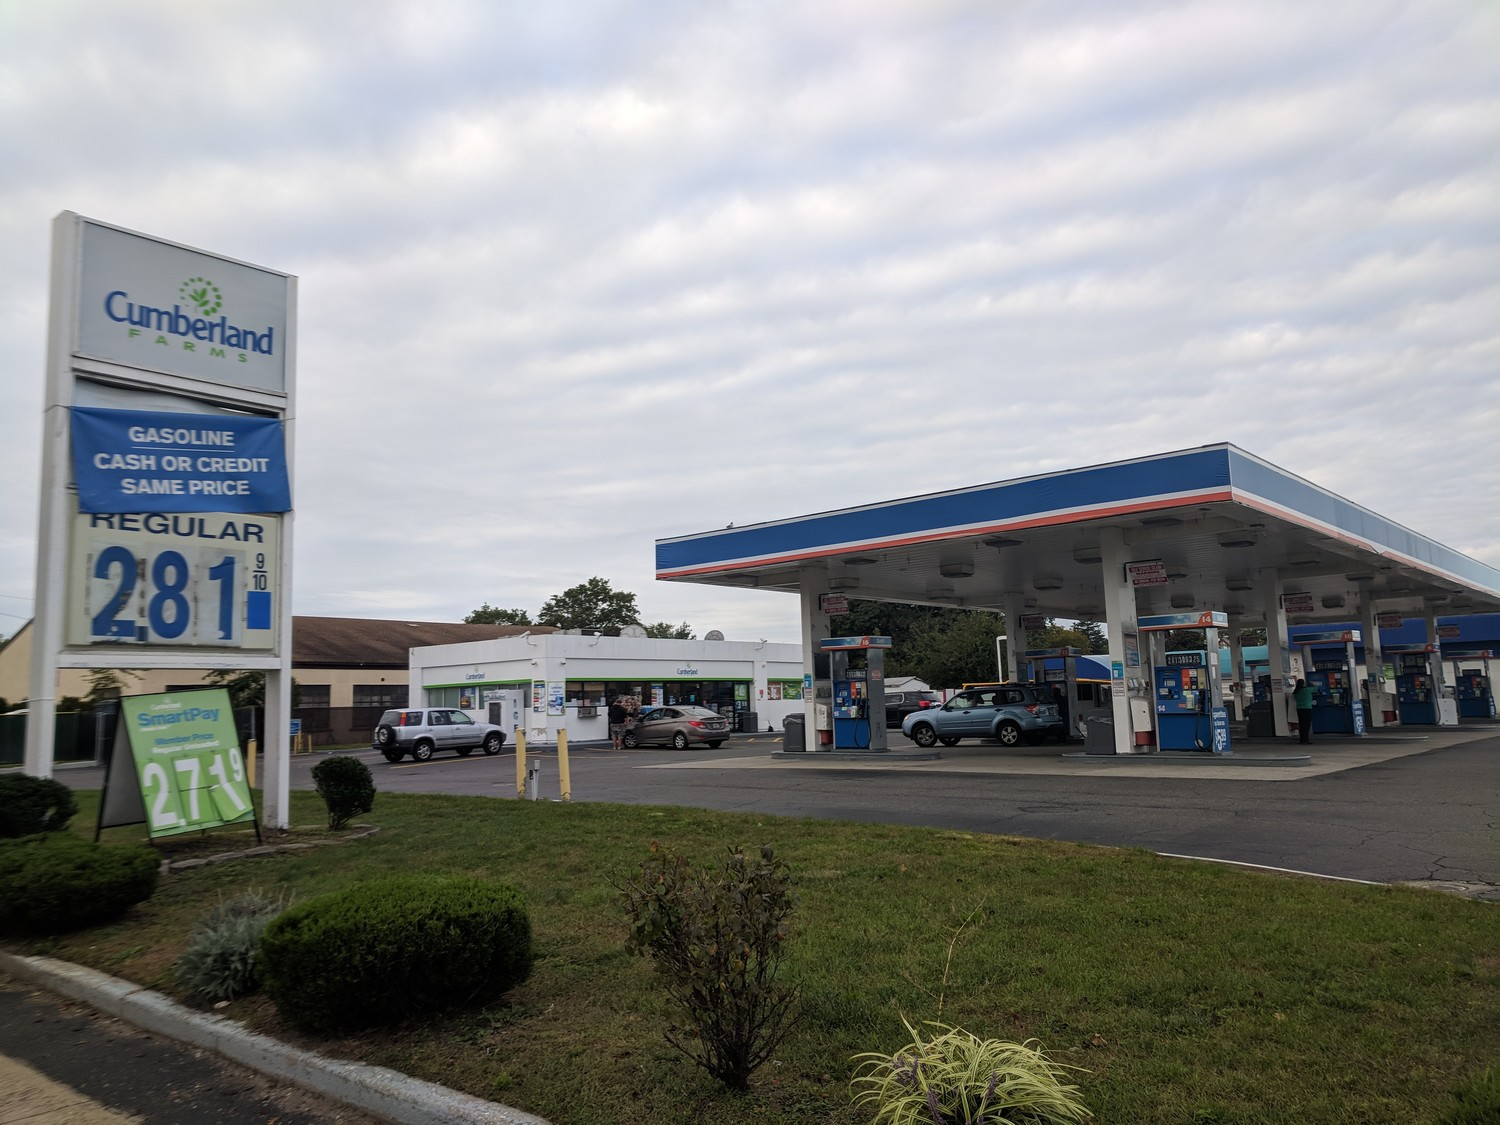 An upgrade is coming to Cumberland Farms, at 2962 Long Beach Road in Oceanside, Town of Hempstead officials said at an Oct. 3 hearing. The rehabilitation process will include the removal of its car wash and repositioning of its curb cuts.